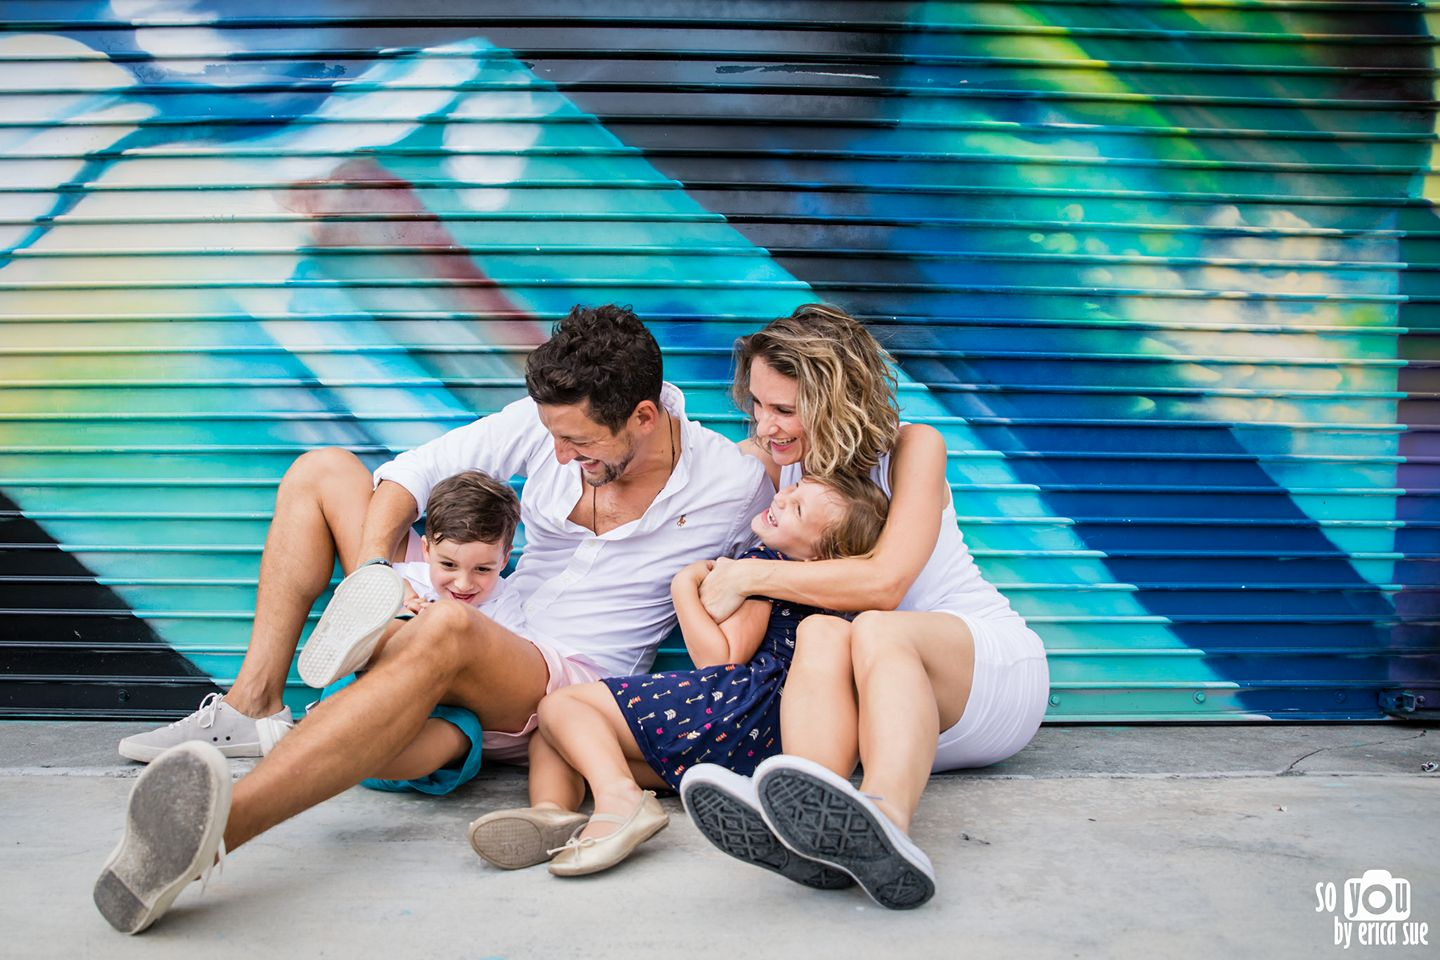 connected emotive family pose photography laughing tickling so you by erica sue